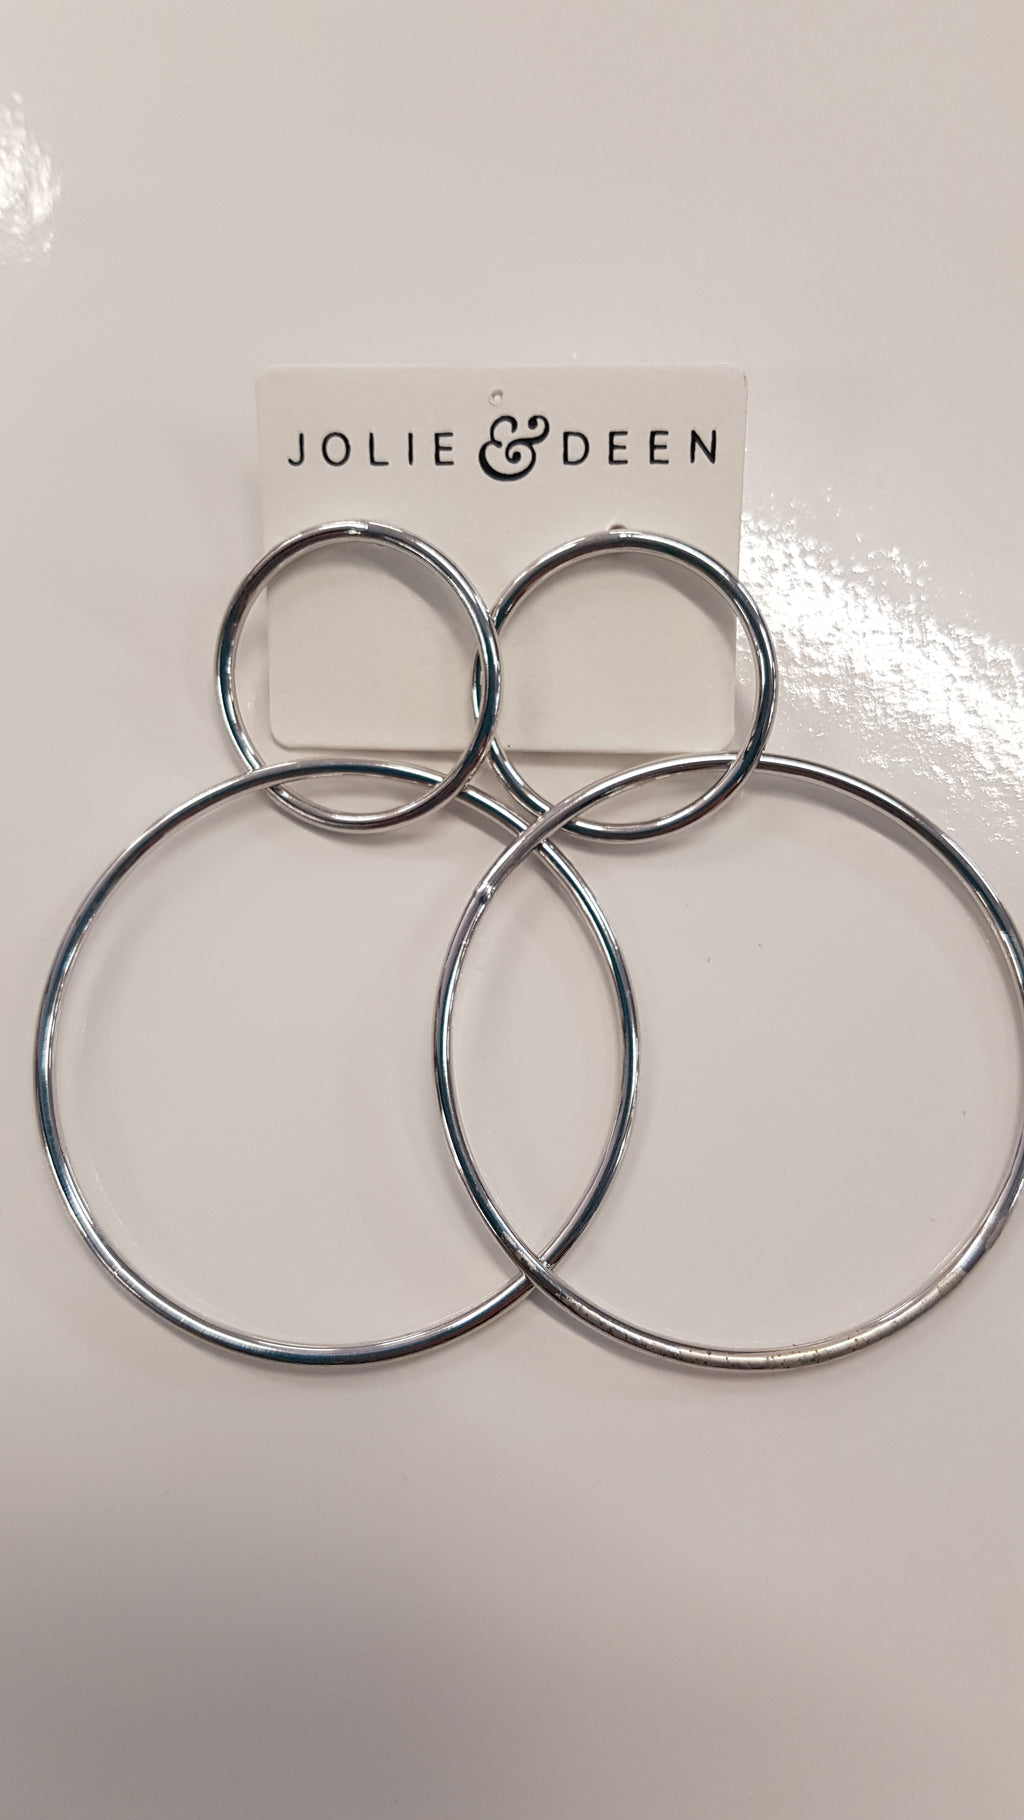 Jolie & Deen double hoops. In silver, gold or rose gold